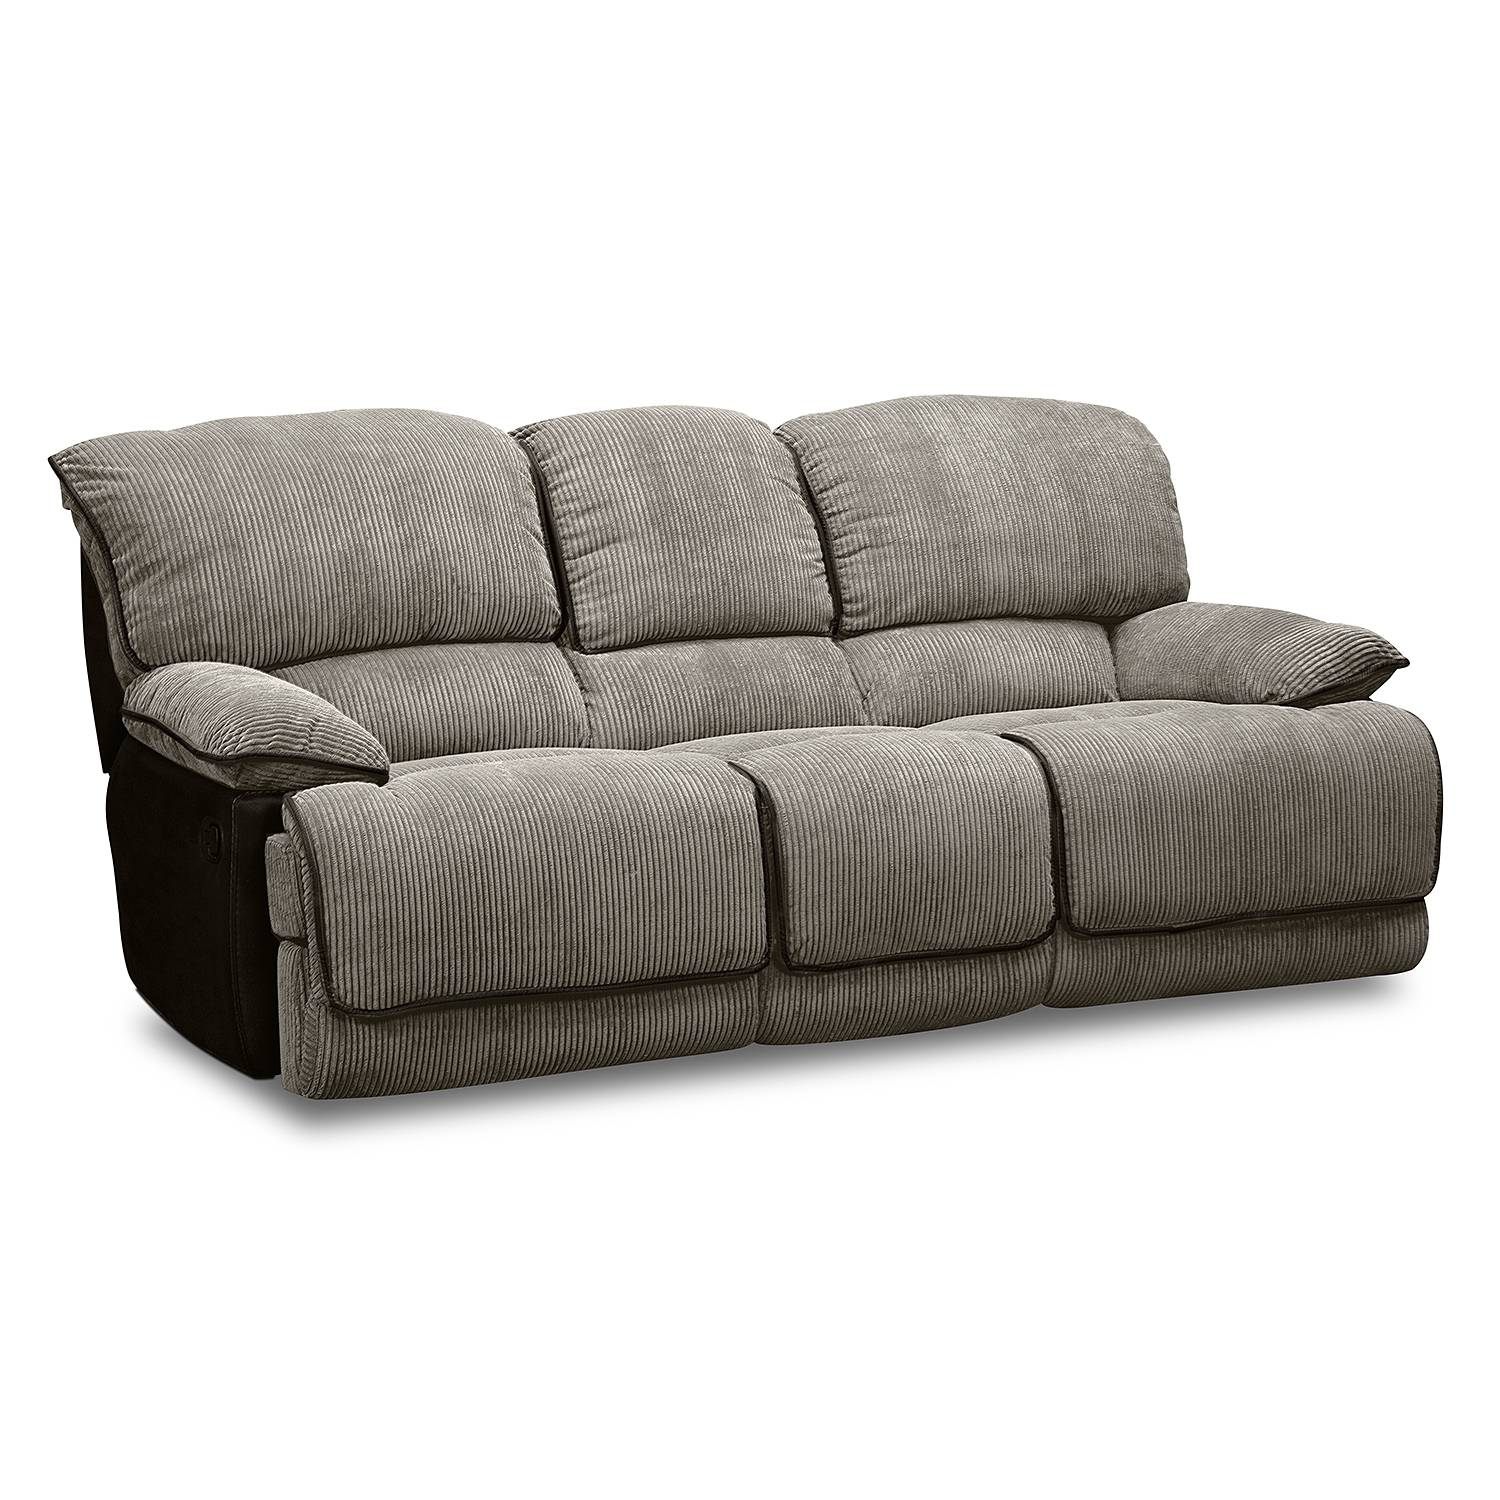 Reclining Sofa Slipcover 38 With Reclining Sofa Slipcover intended for Slipcover For Recliner Sofas (Image 5 of 15)